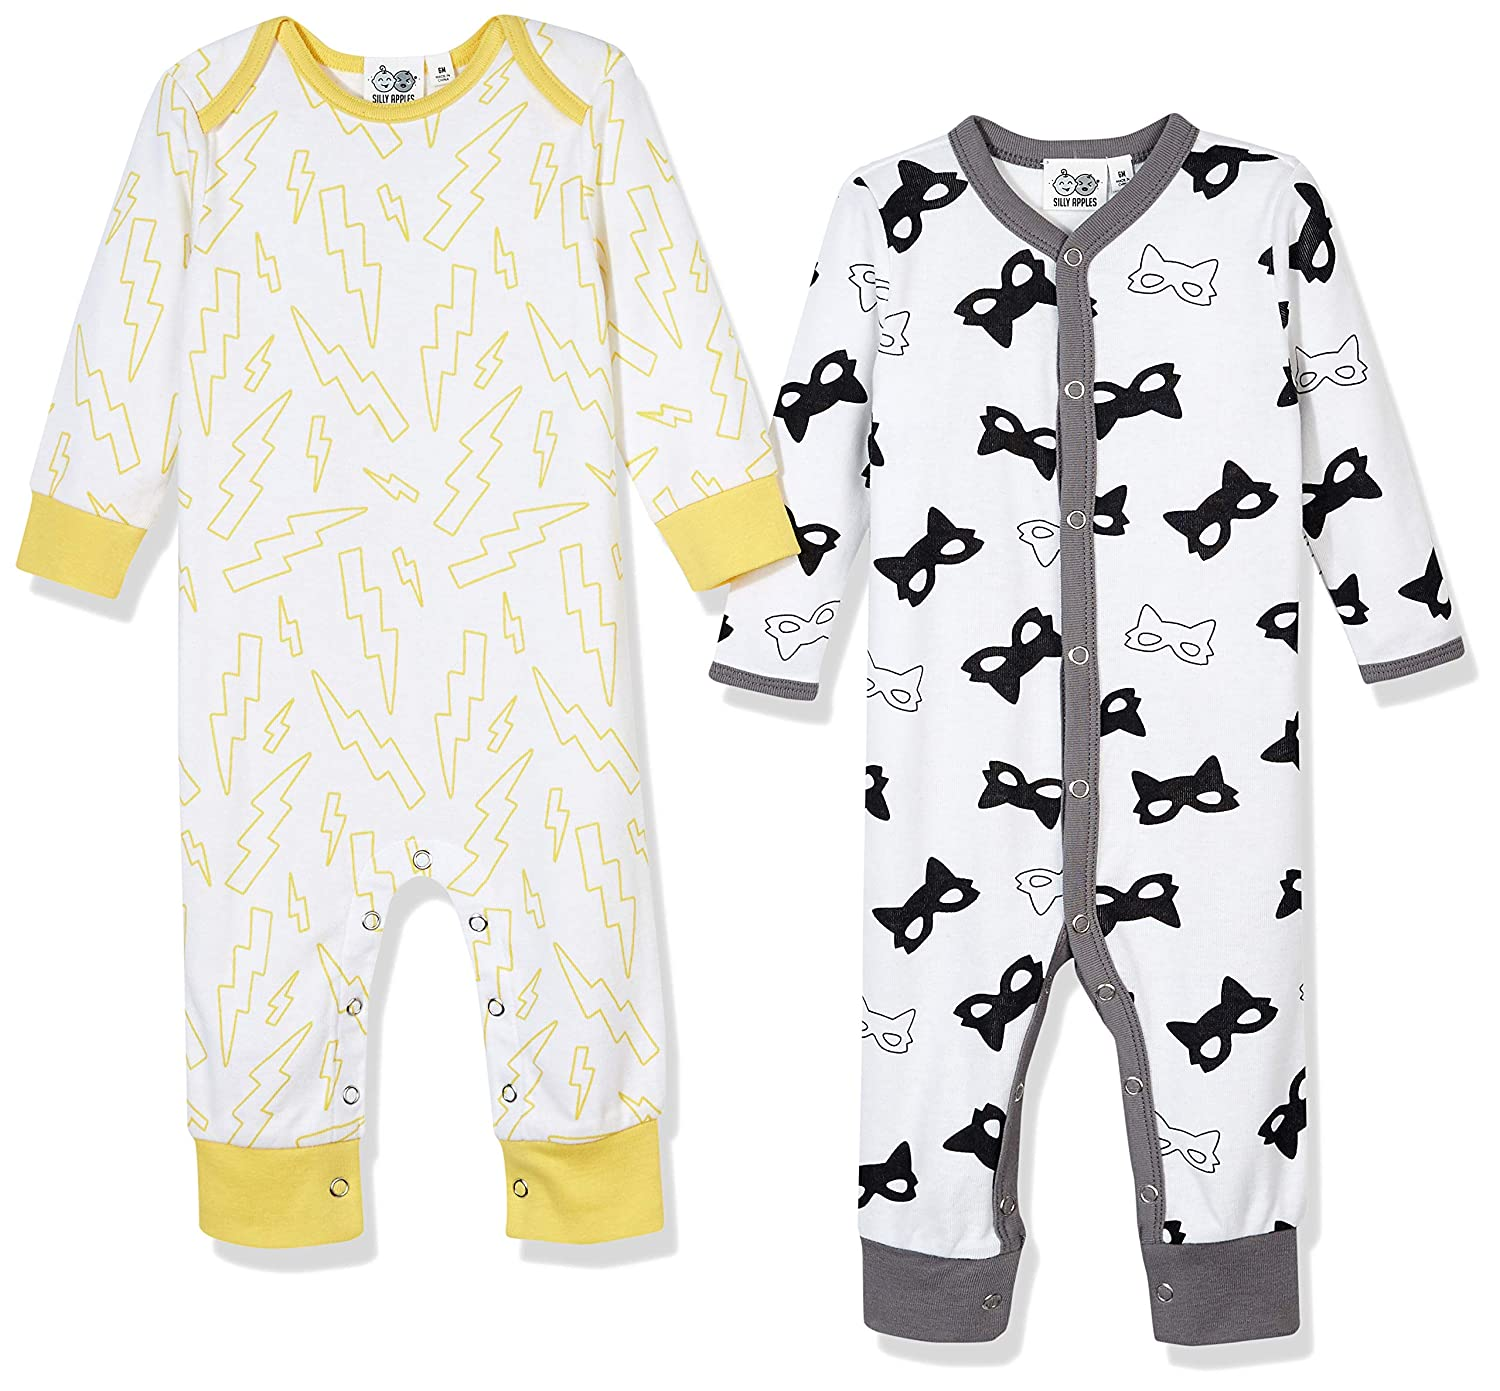 Silly Apples Baby Toddler Boys or Girls Fall Outfit 2-Pack Jumpsuit Romper Onesies